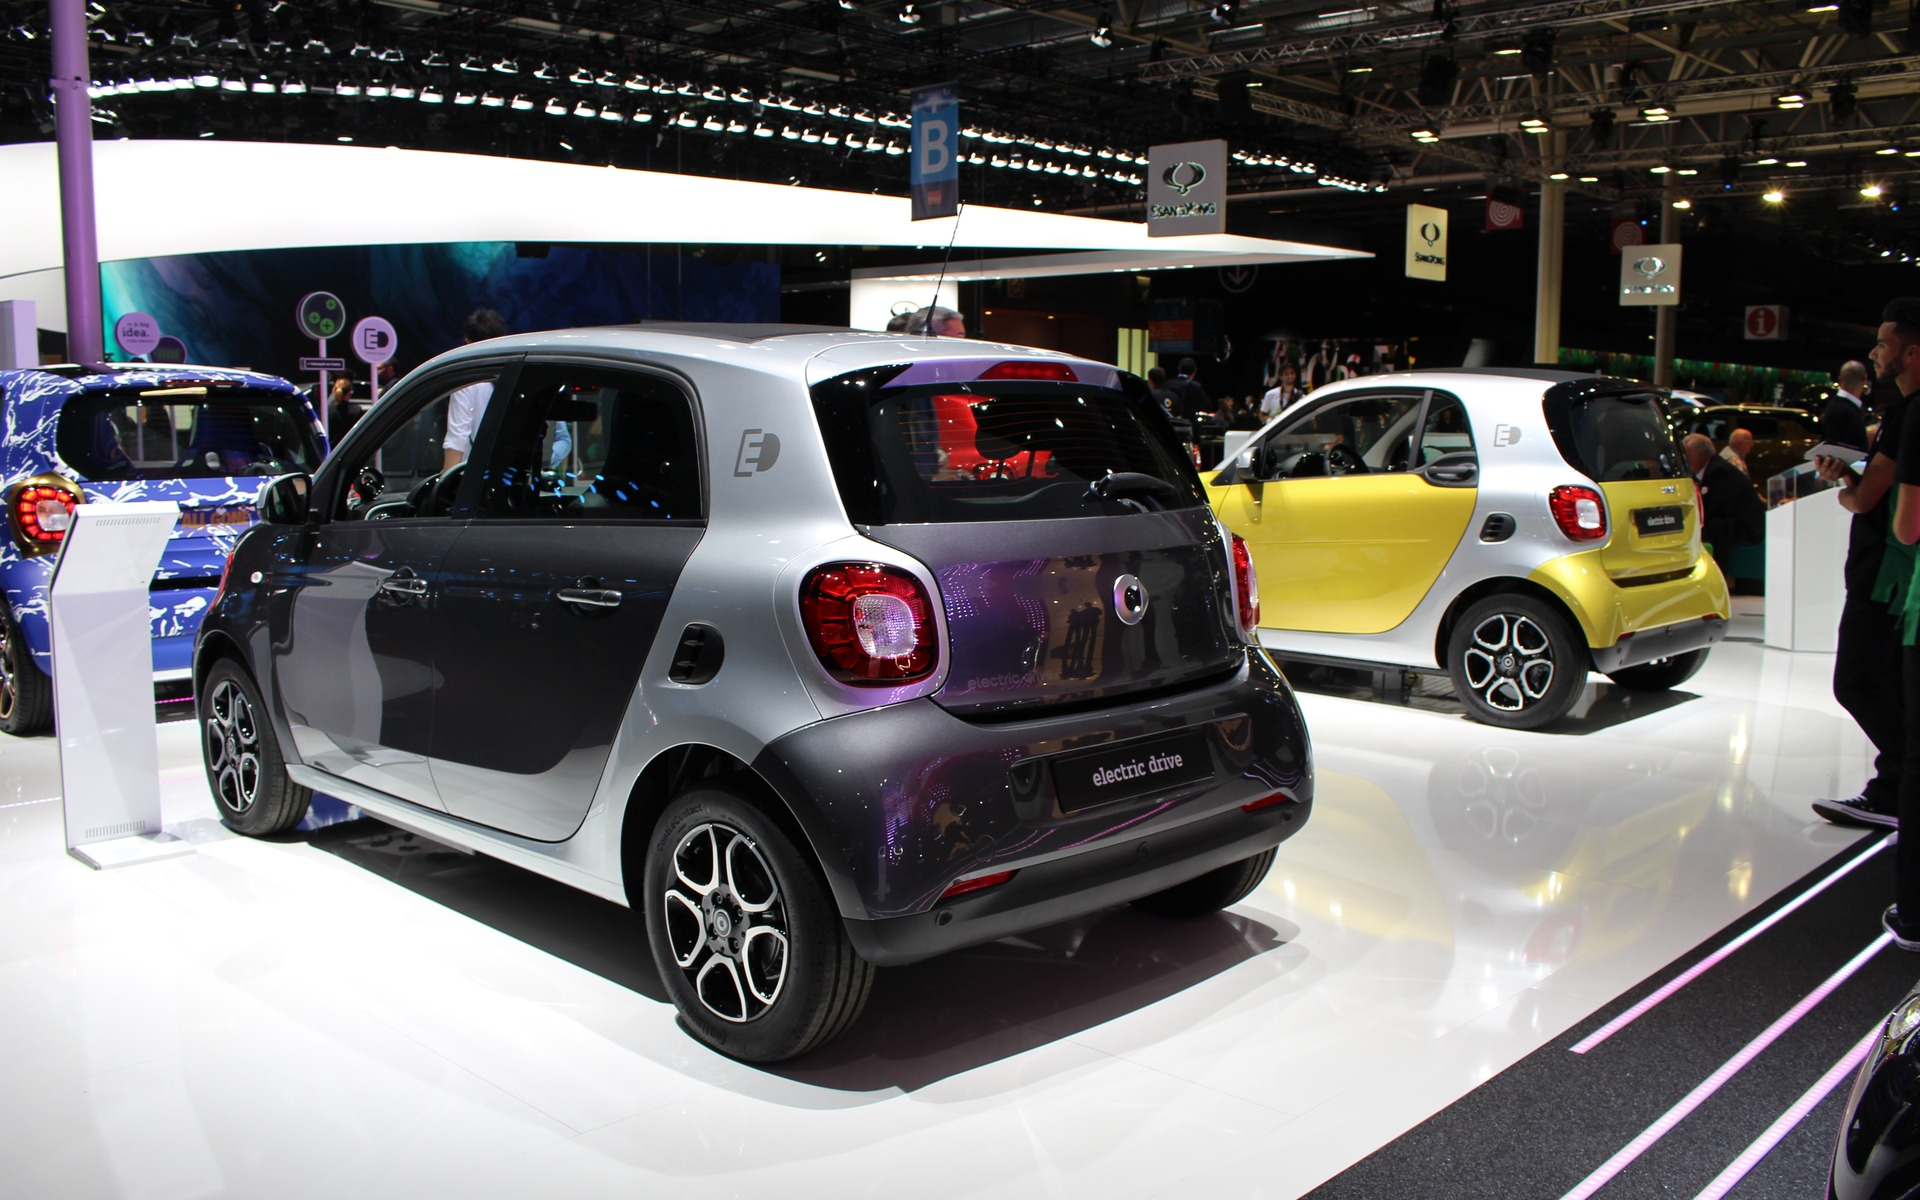 smart fortwo electric drive 2017 le retour de la citadine lectrique 9 26. Black Bedroom Furniture Sets. Home Design Ideas